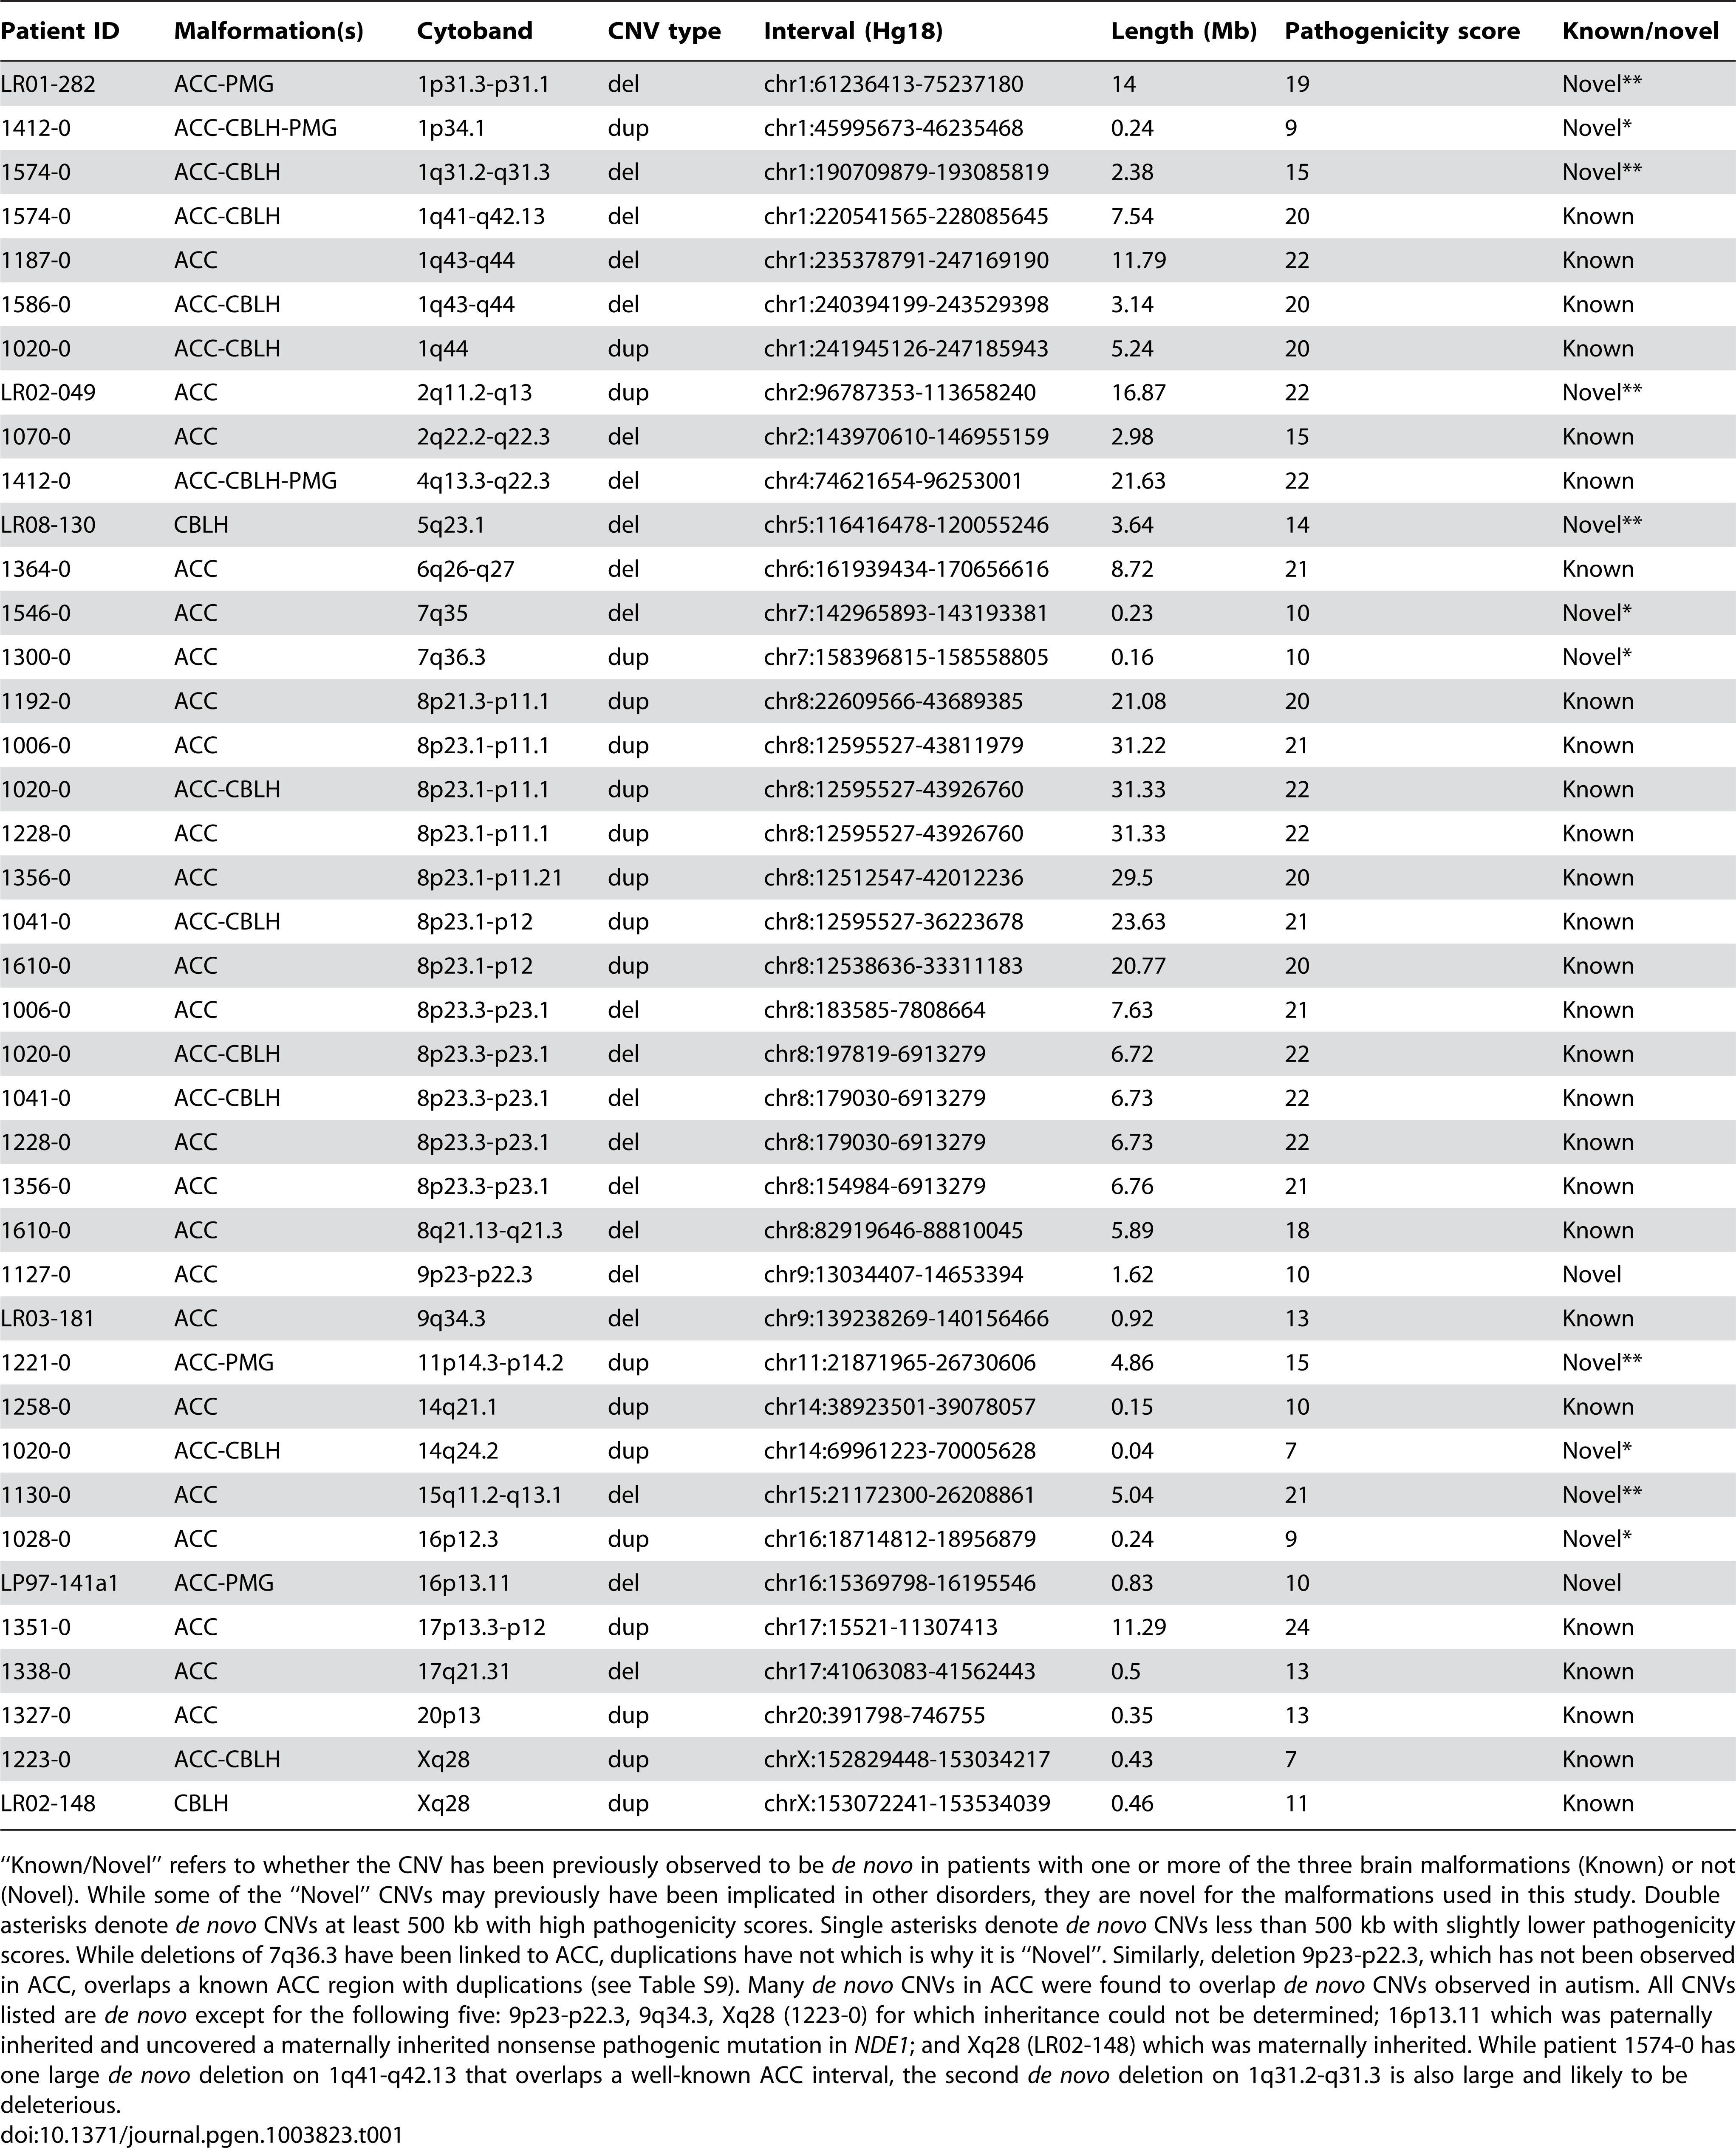 List of <i>de novo</i> and likely deleterious brain malformation CNVs ordered by their cytogenetic bands.